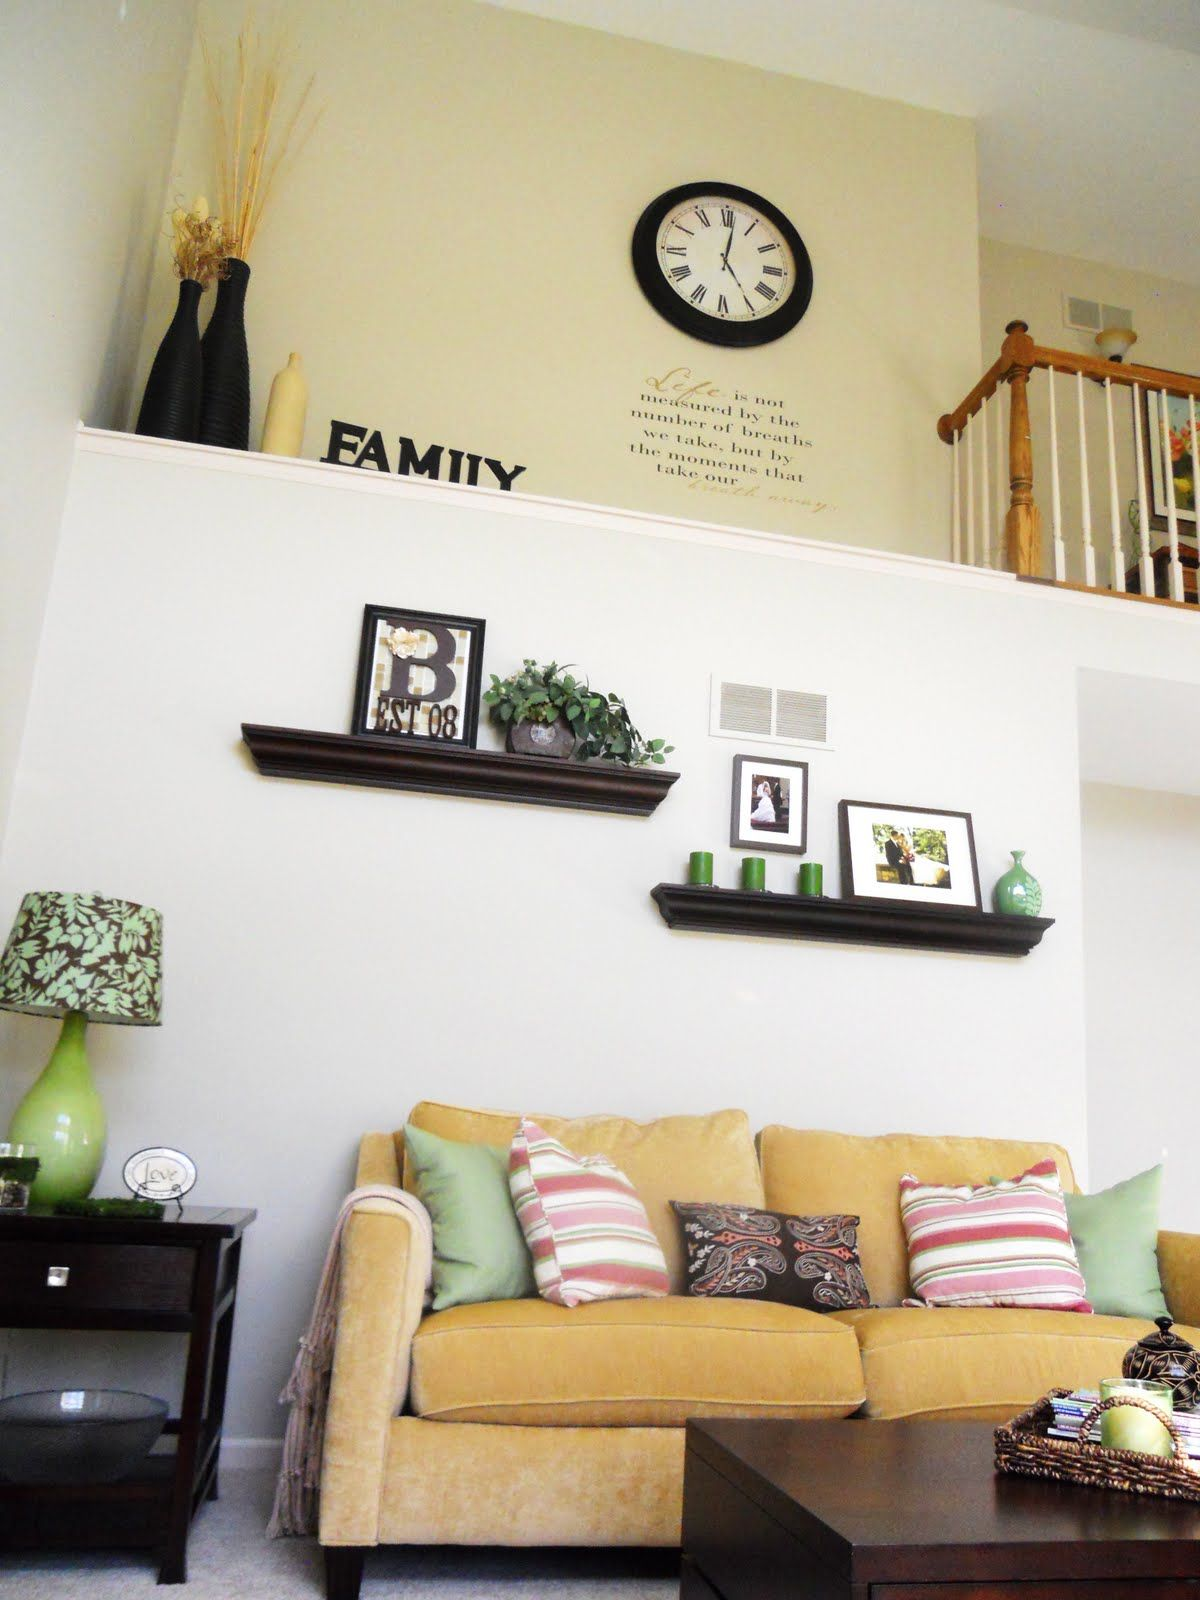 DIY Family Sign Using Tile Backsplash | Awkward, Spaces and Living rooms